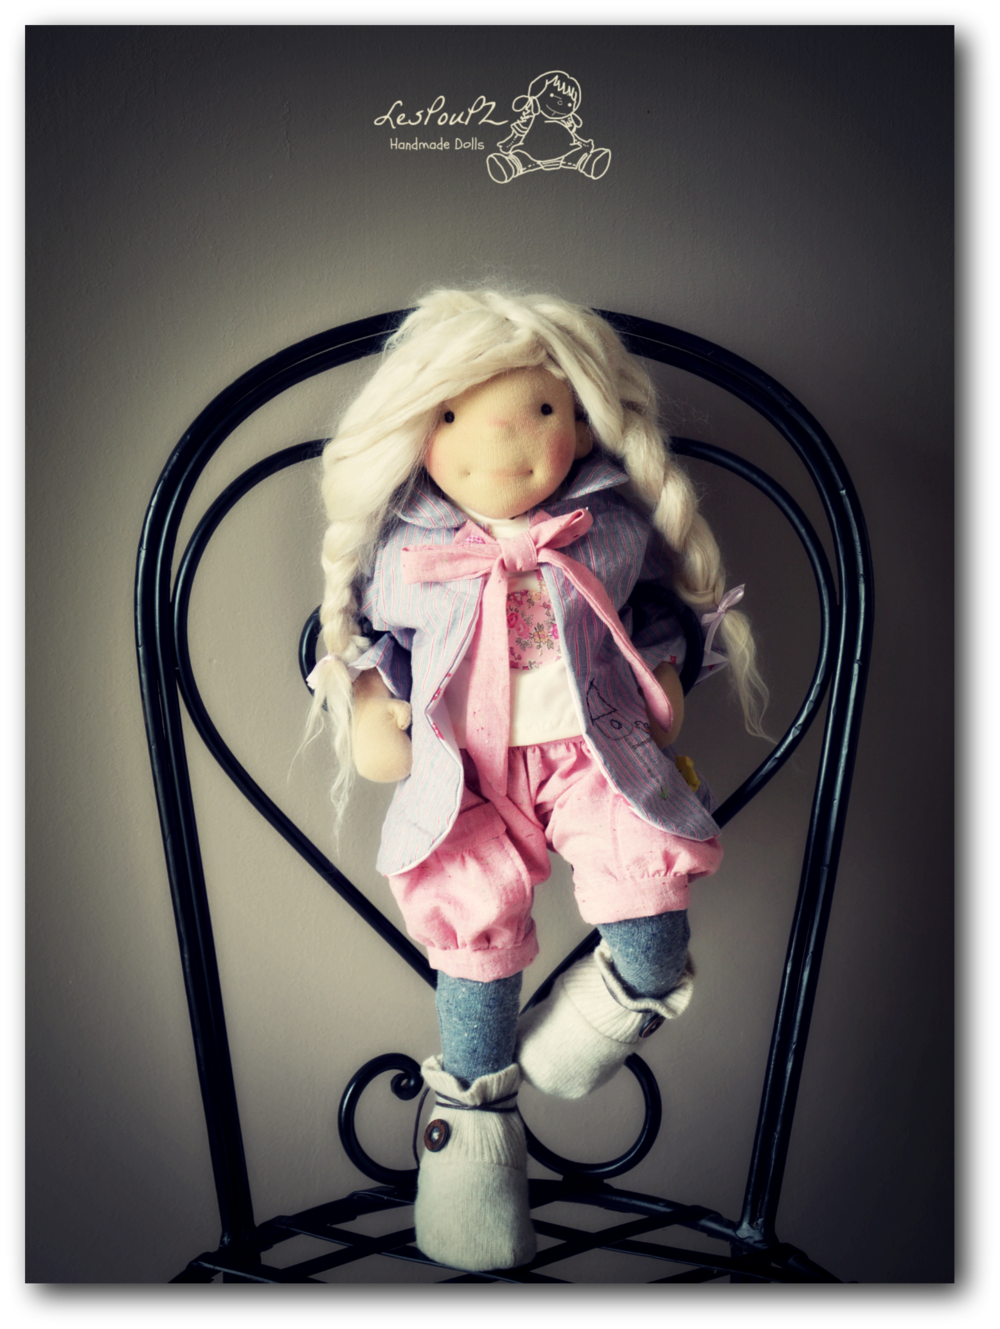 A new outfit for a doll I made last year. Worn here by my model doll, Lola.